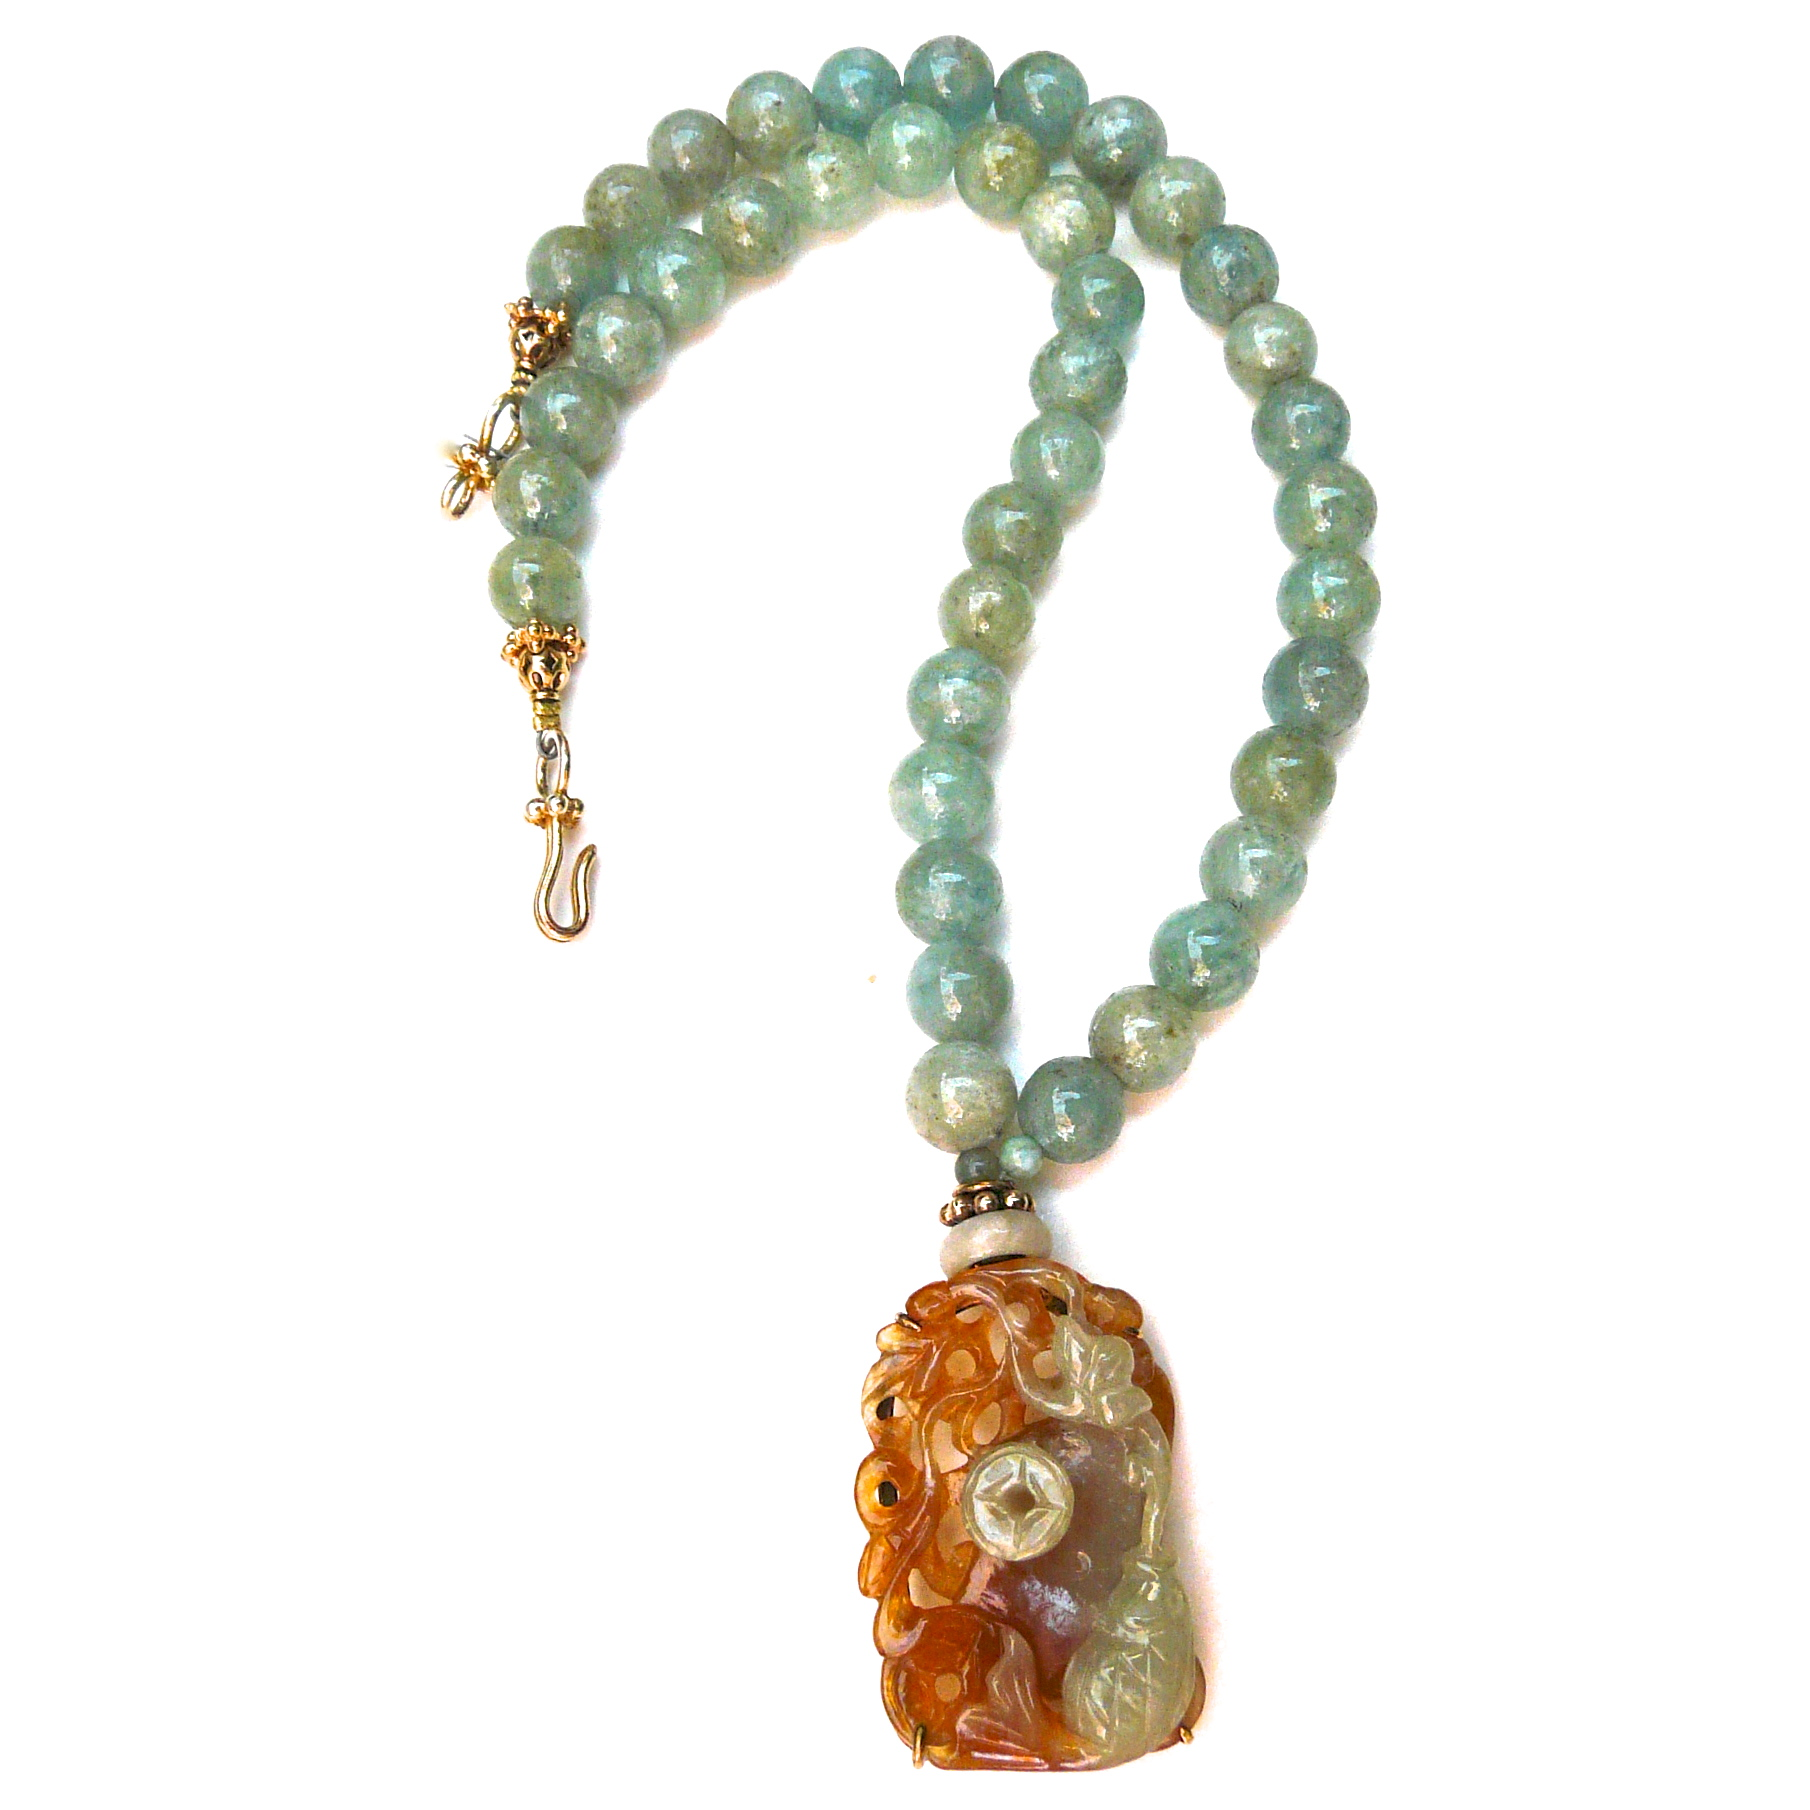 C2032 a Jade Fish, Lotus, Pi, Aquamarine Necklace